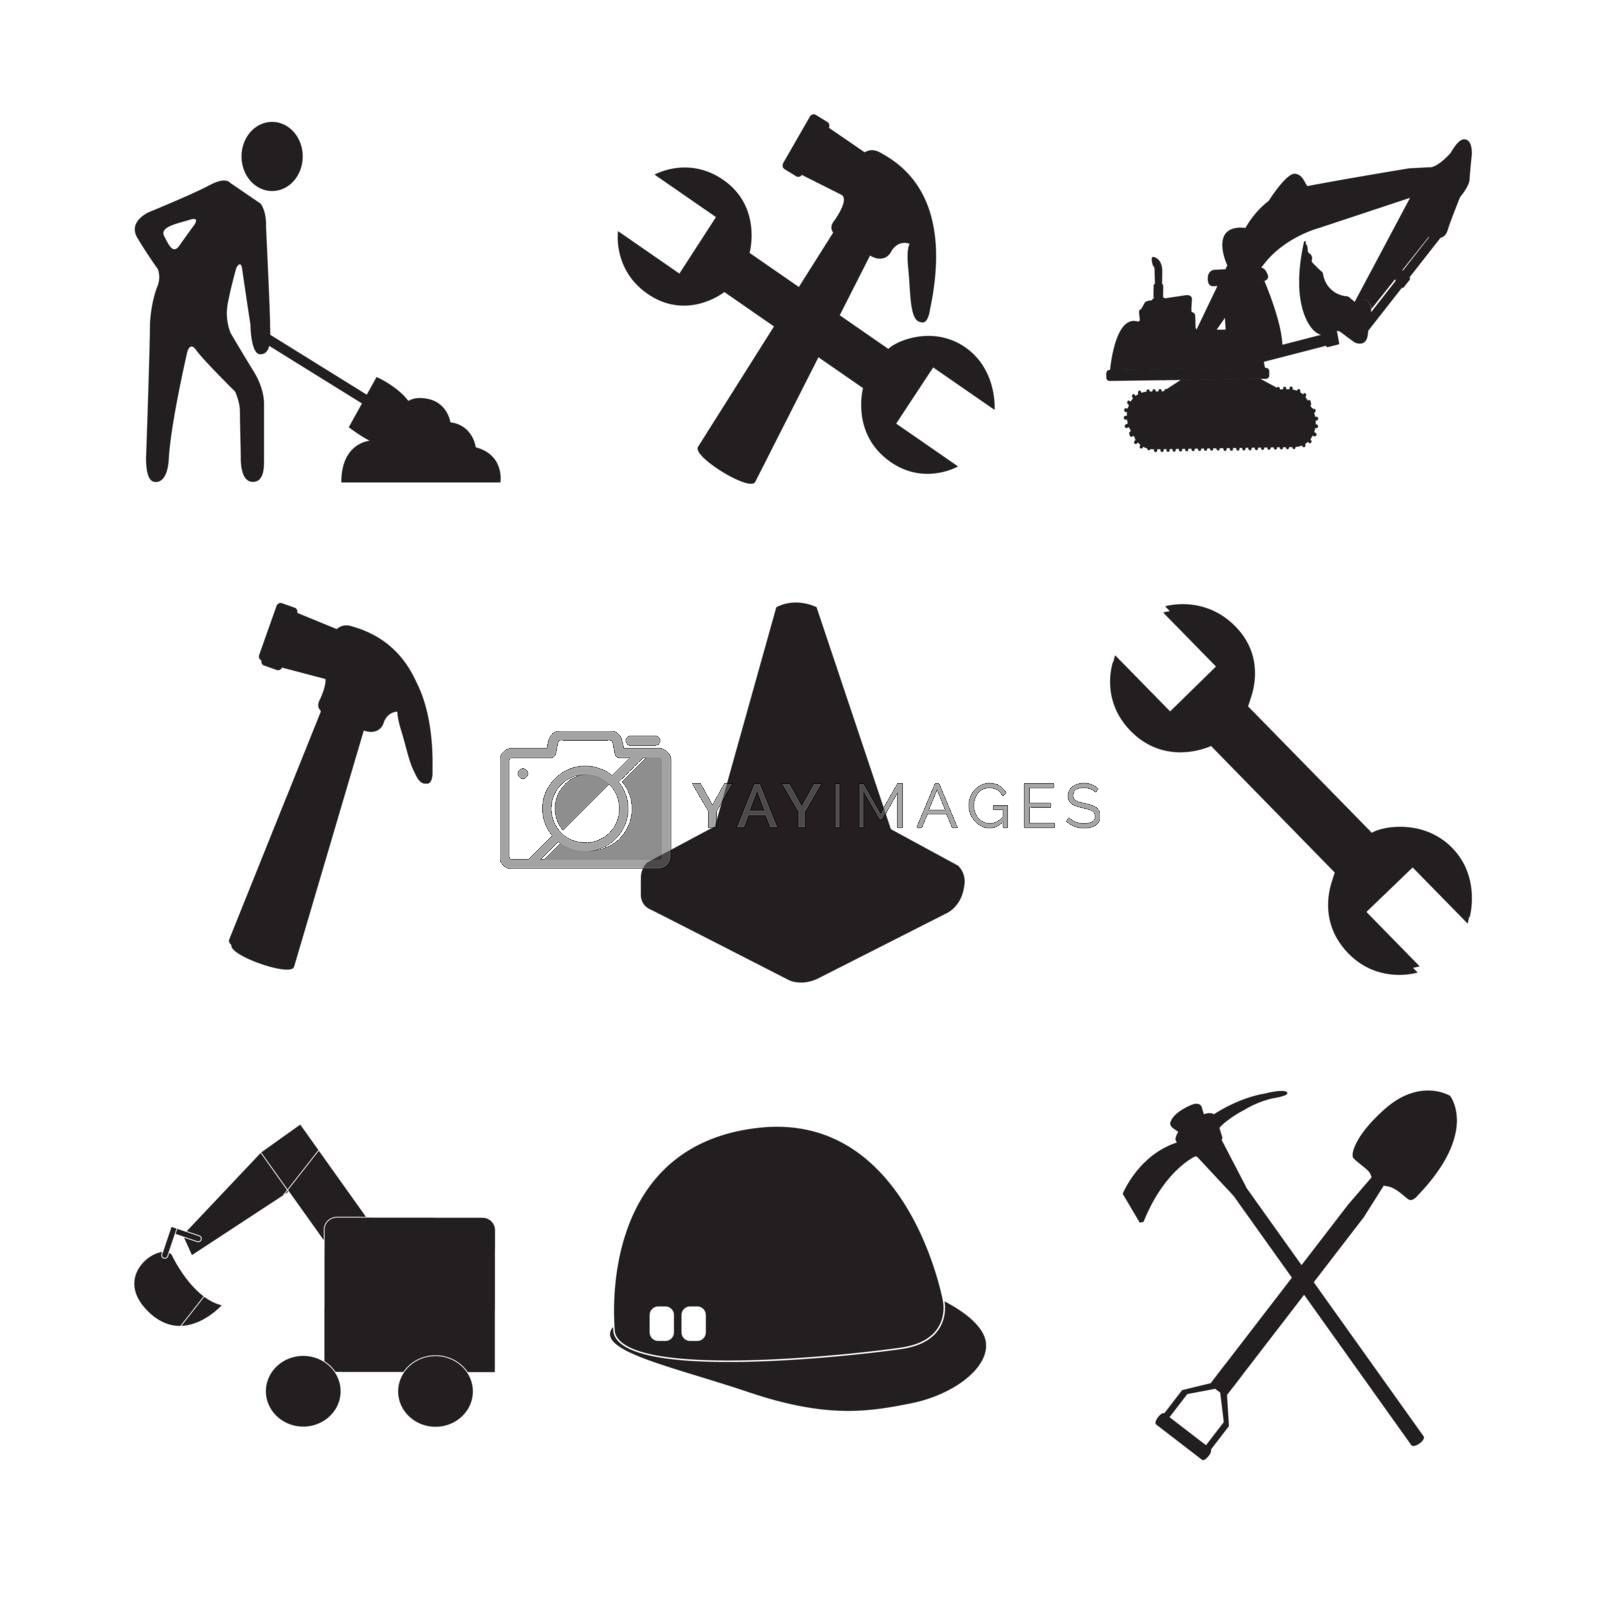 Construction tools silhouettes and a man working